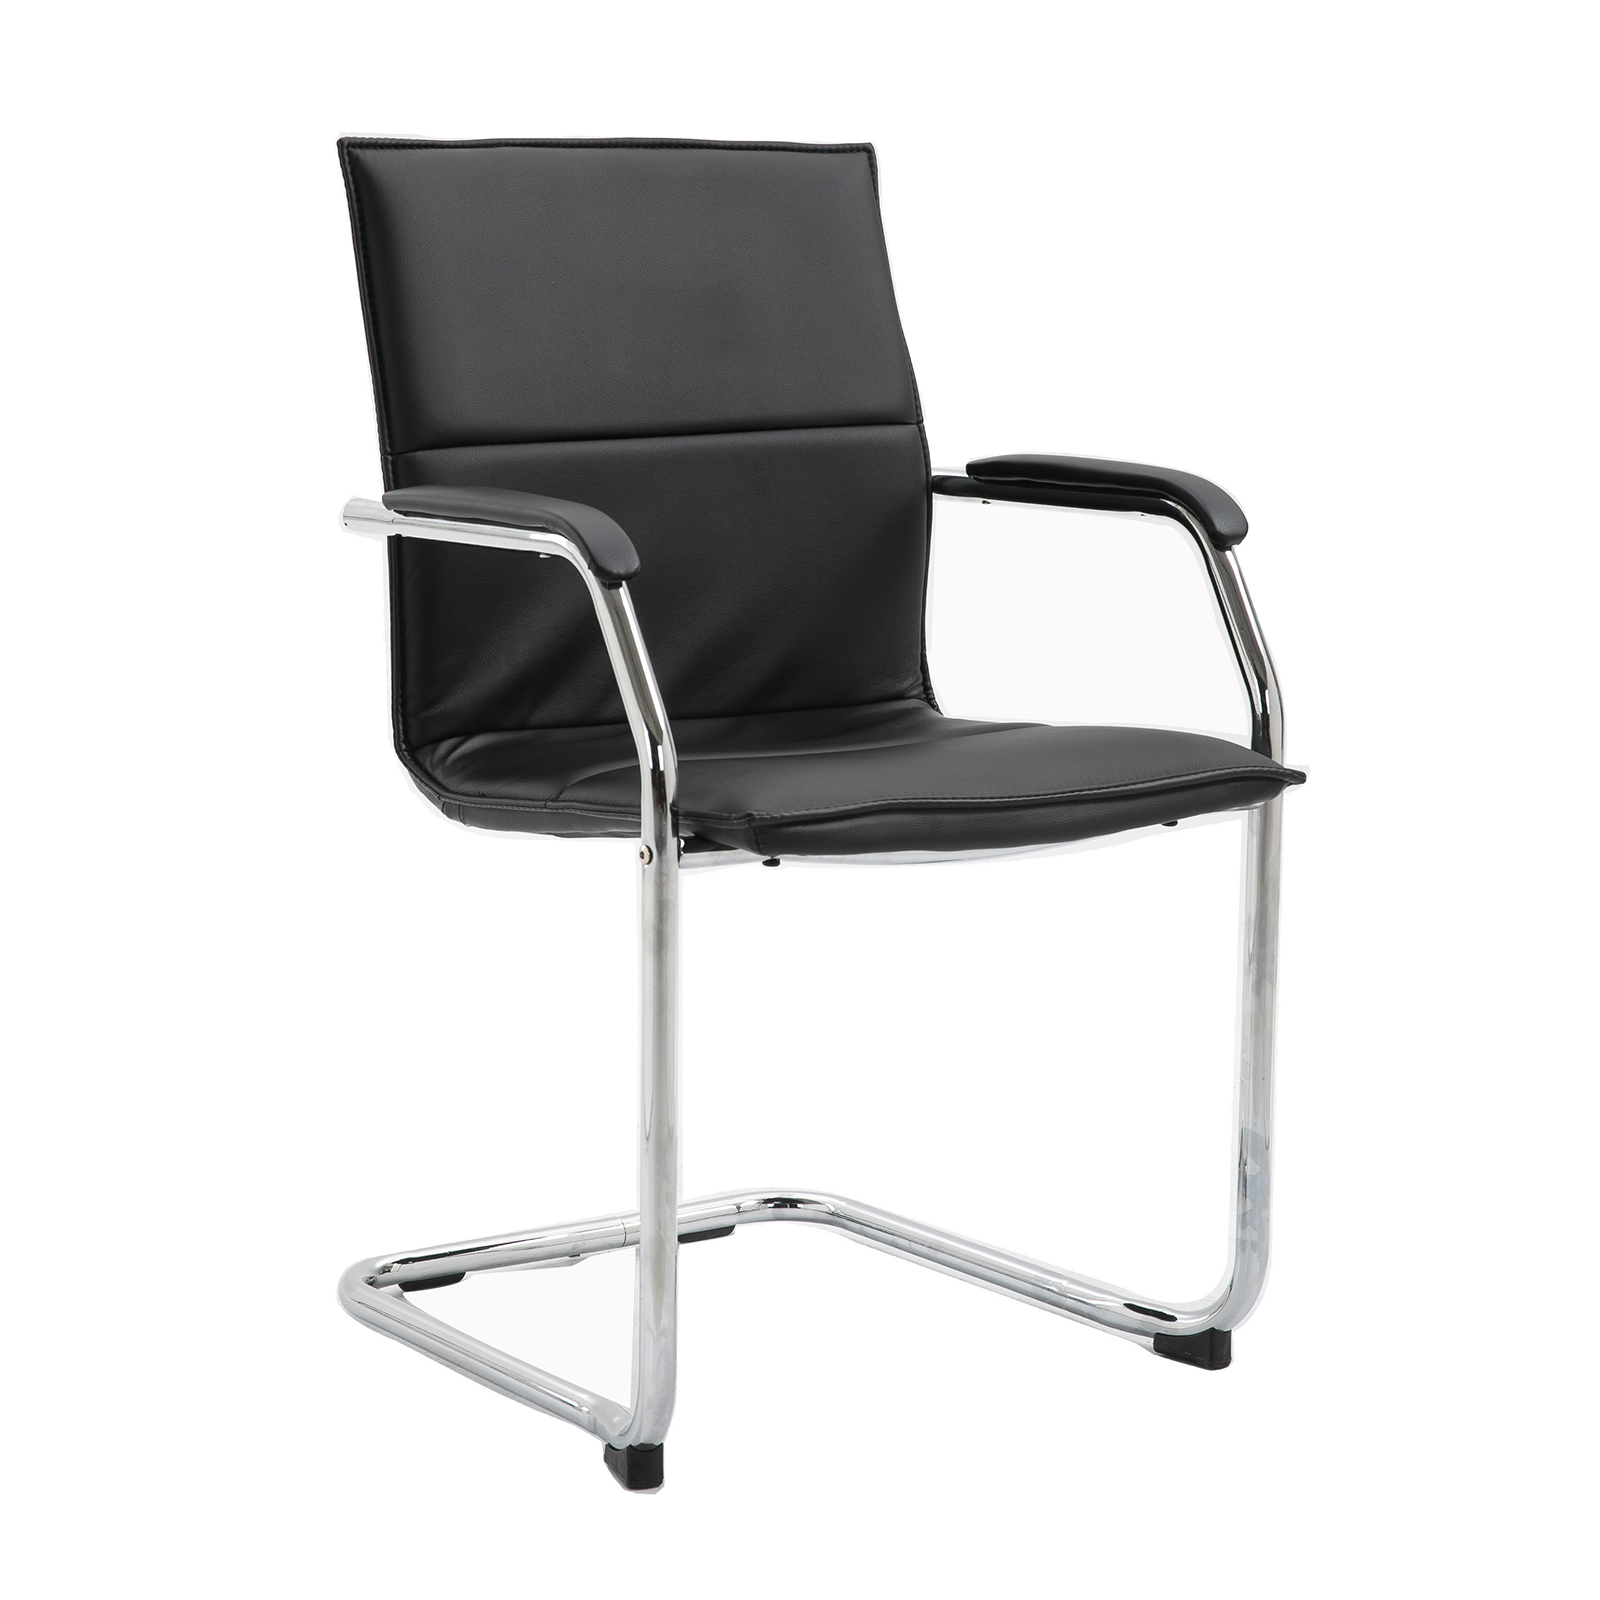 Boardroom / Meeting Essen stackable meeting room cantilever chair - black faux leather